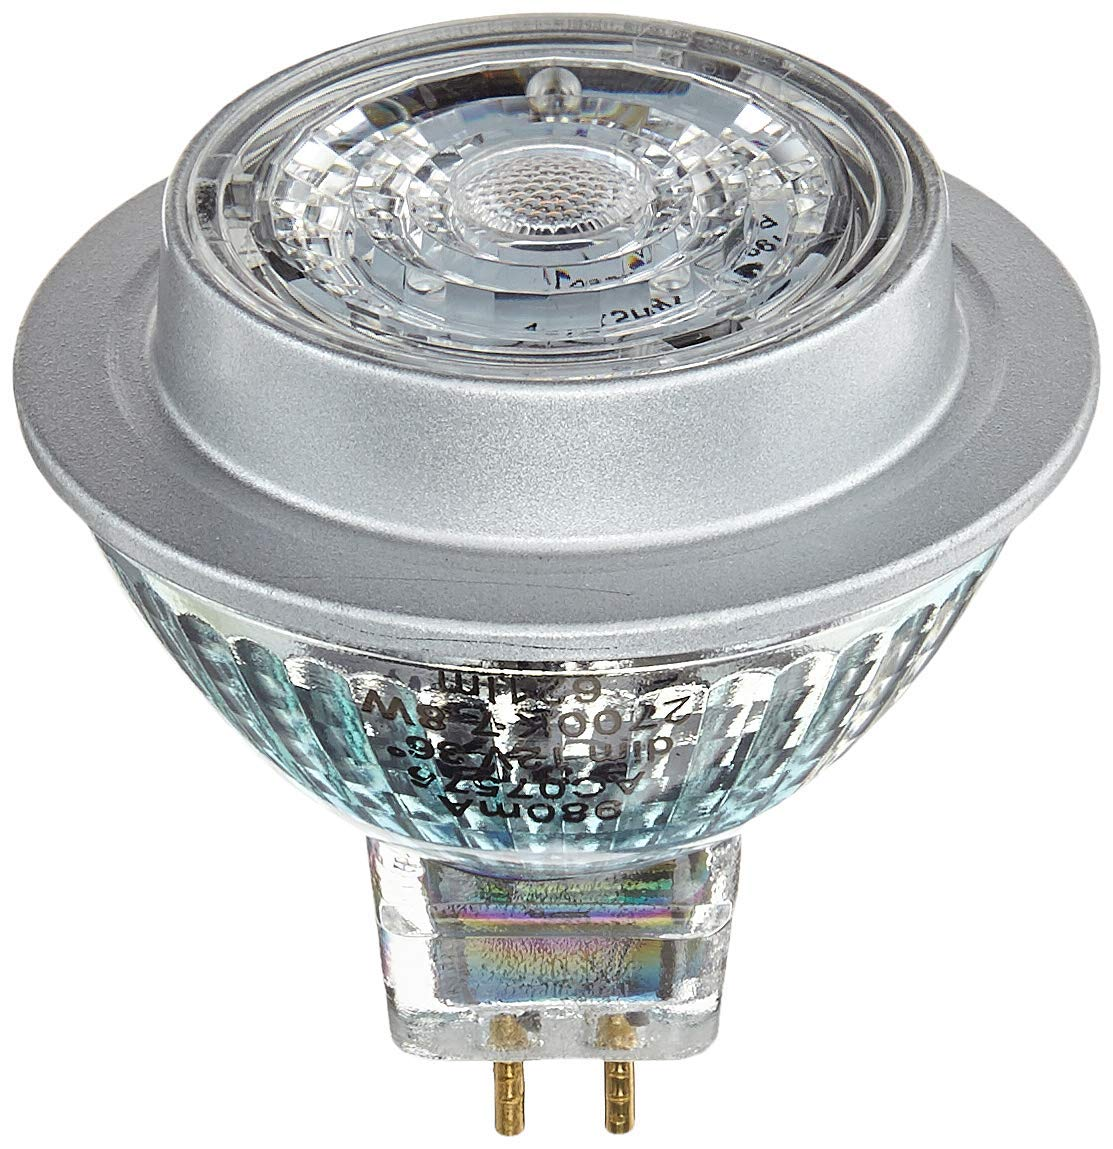 Osram Superstar Mr16 Bombilla LED, GU5.3, 7.8 watts, Blanco, 1 Unidad: Amazon.es: Iluminación